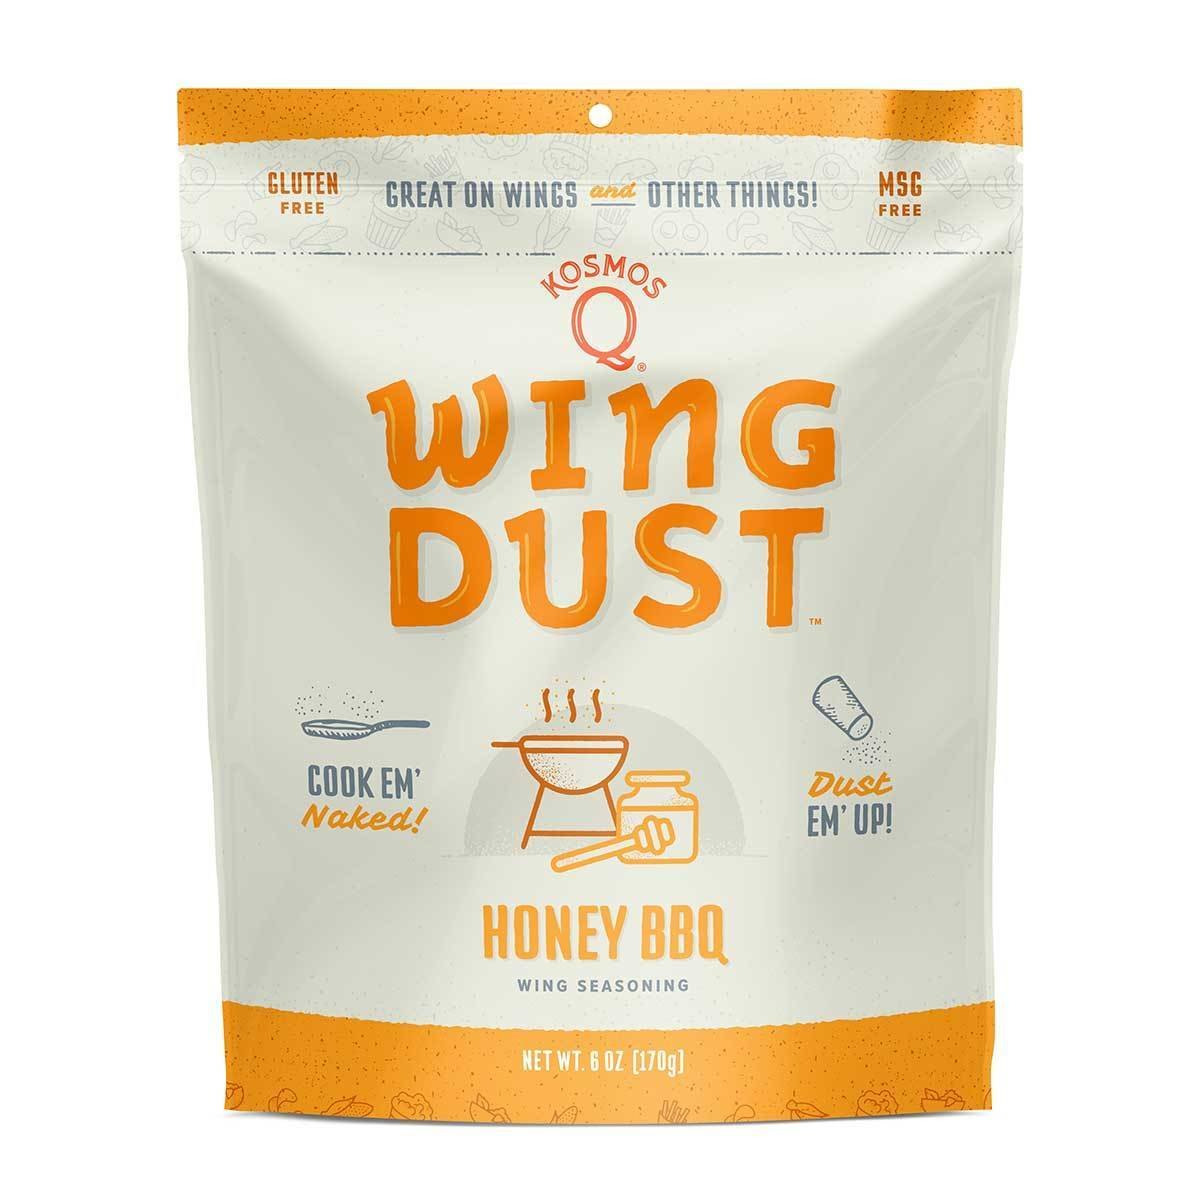 Kosmos Honey BBQ Wing Dust 6 OZ BAG 0851818003550